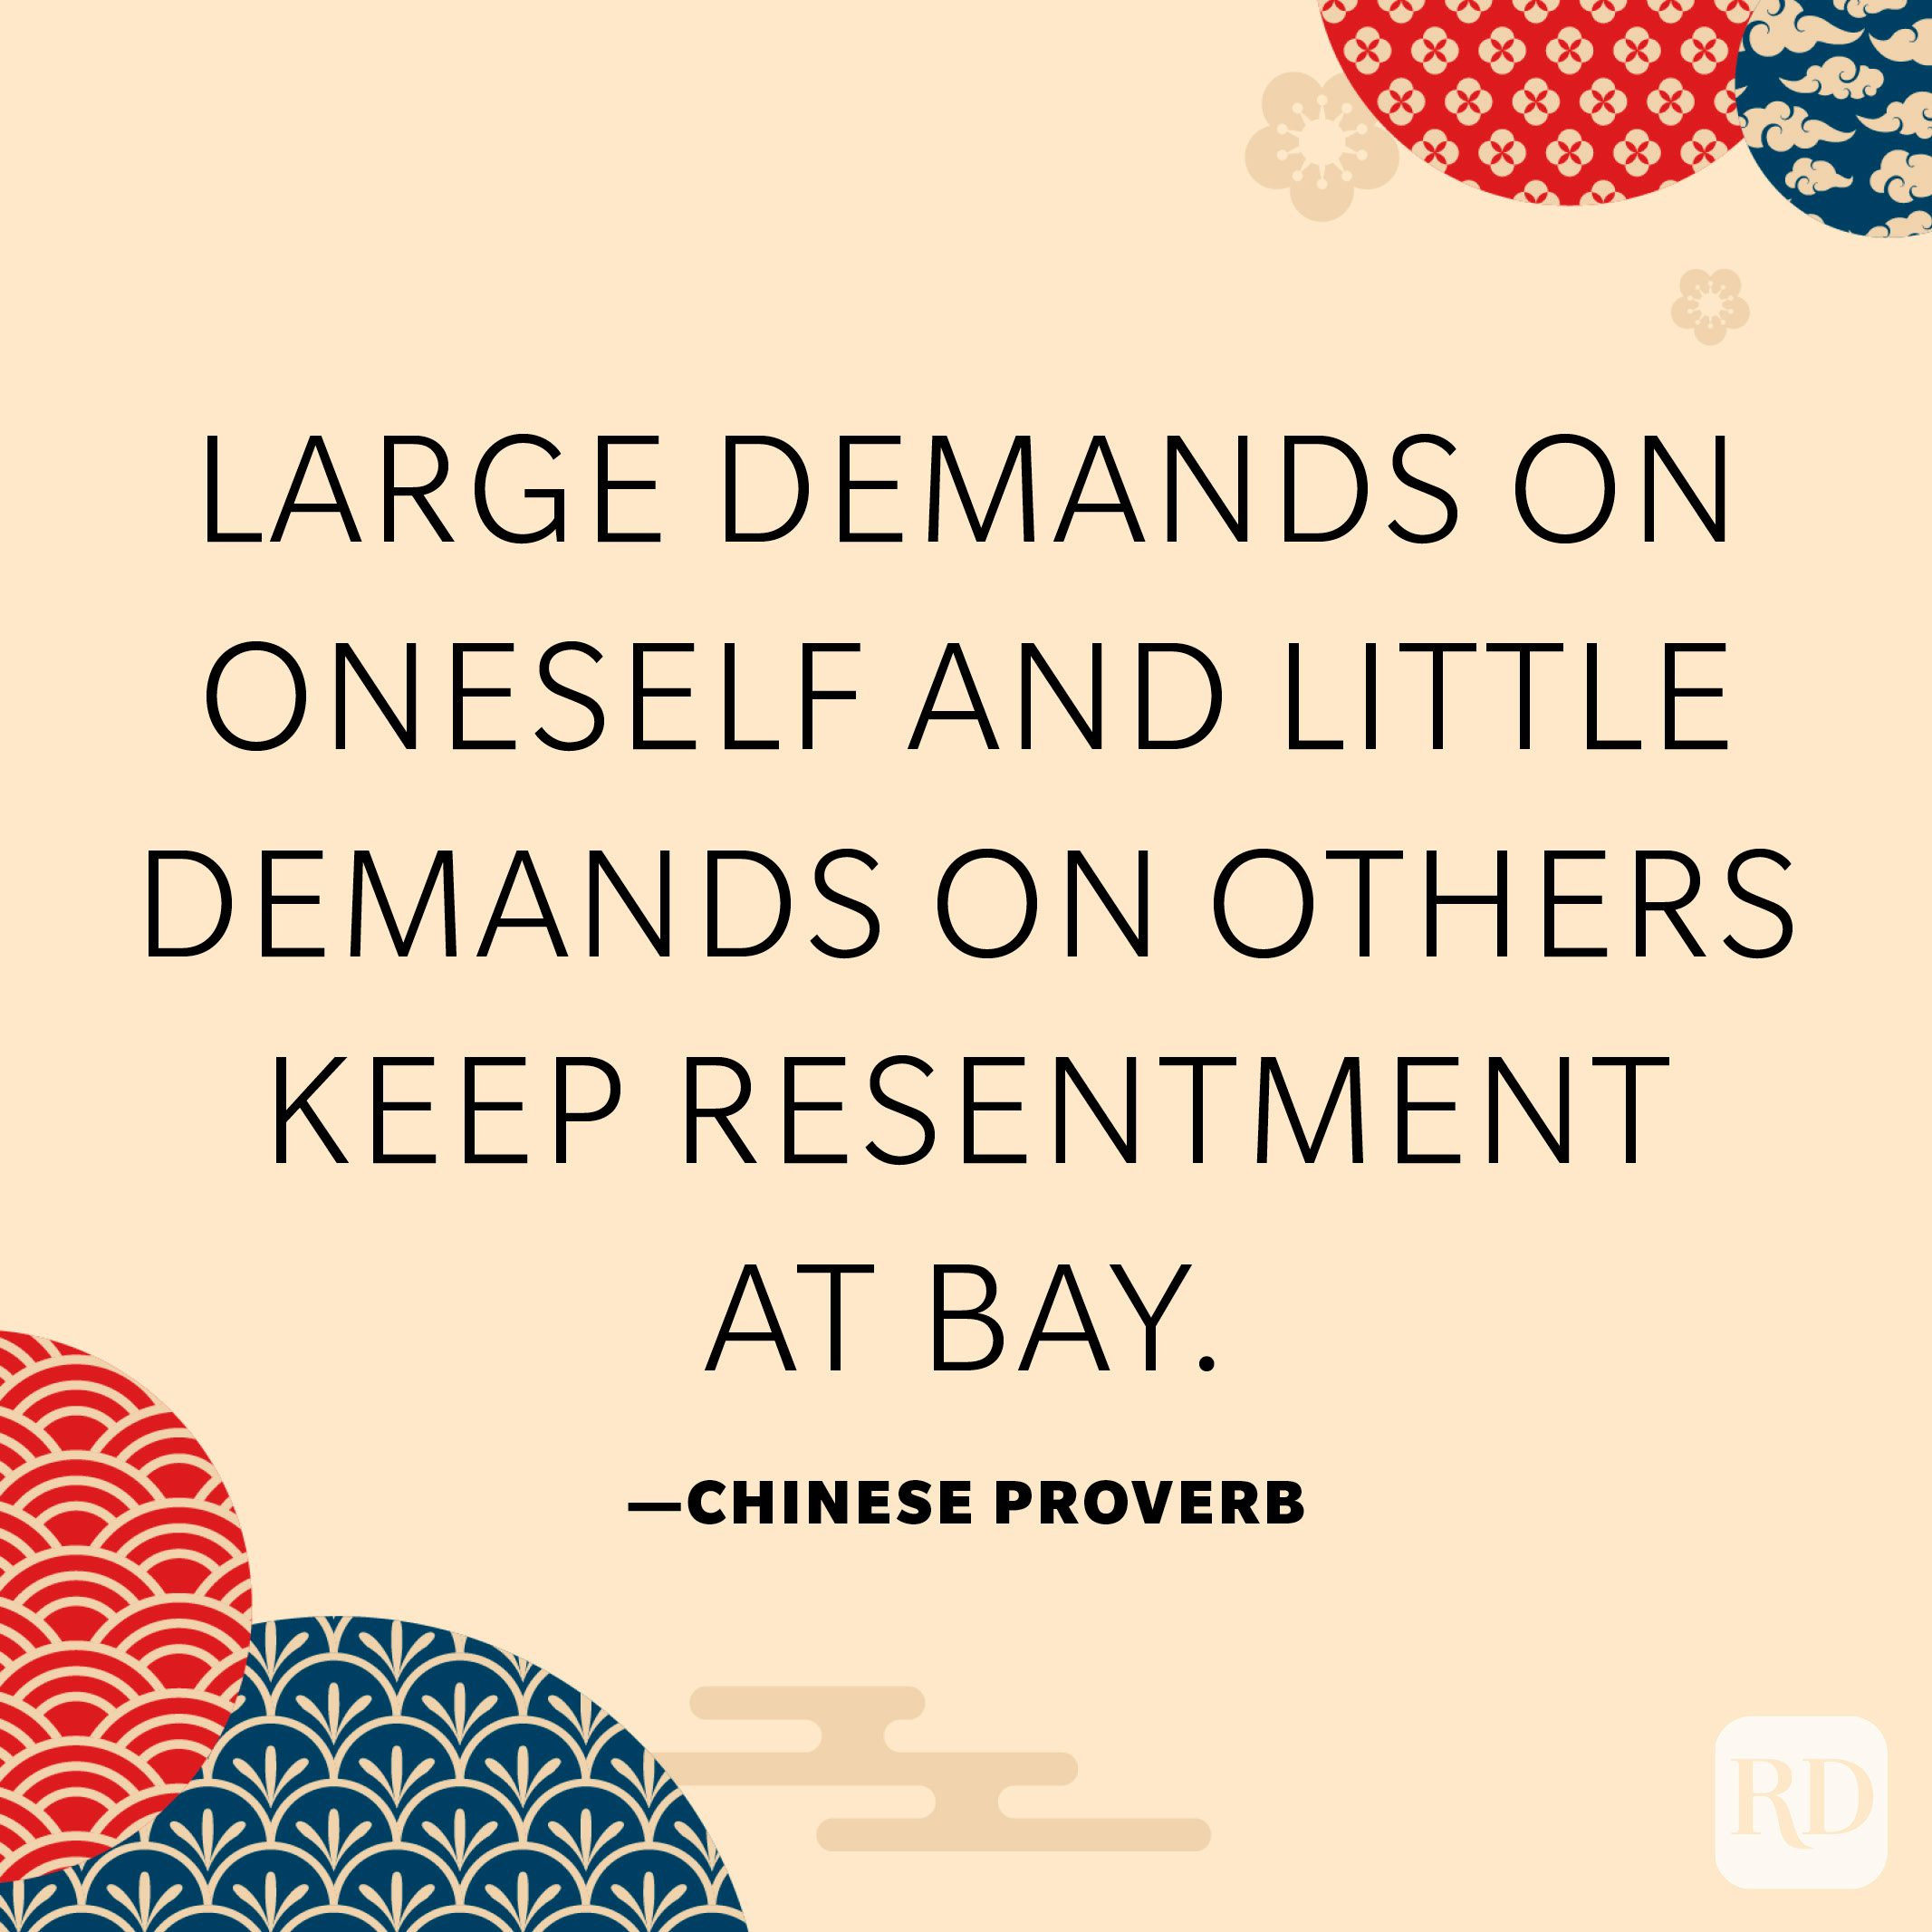 Large demands on oneself and little demands on others keep resentment at bay